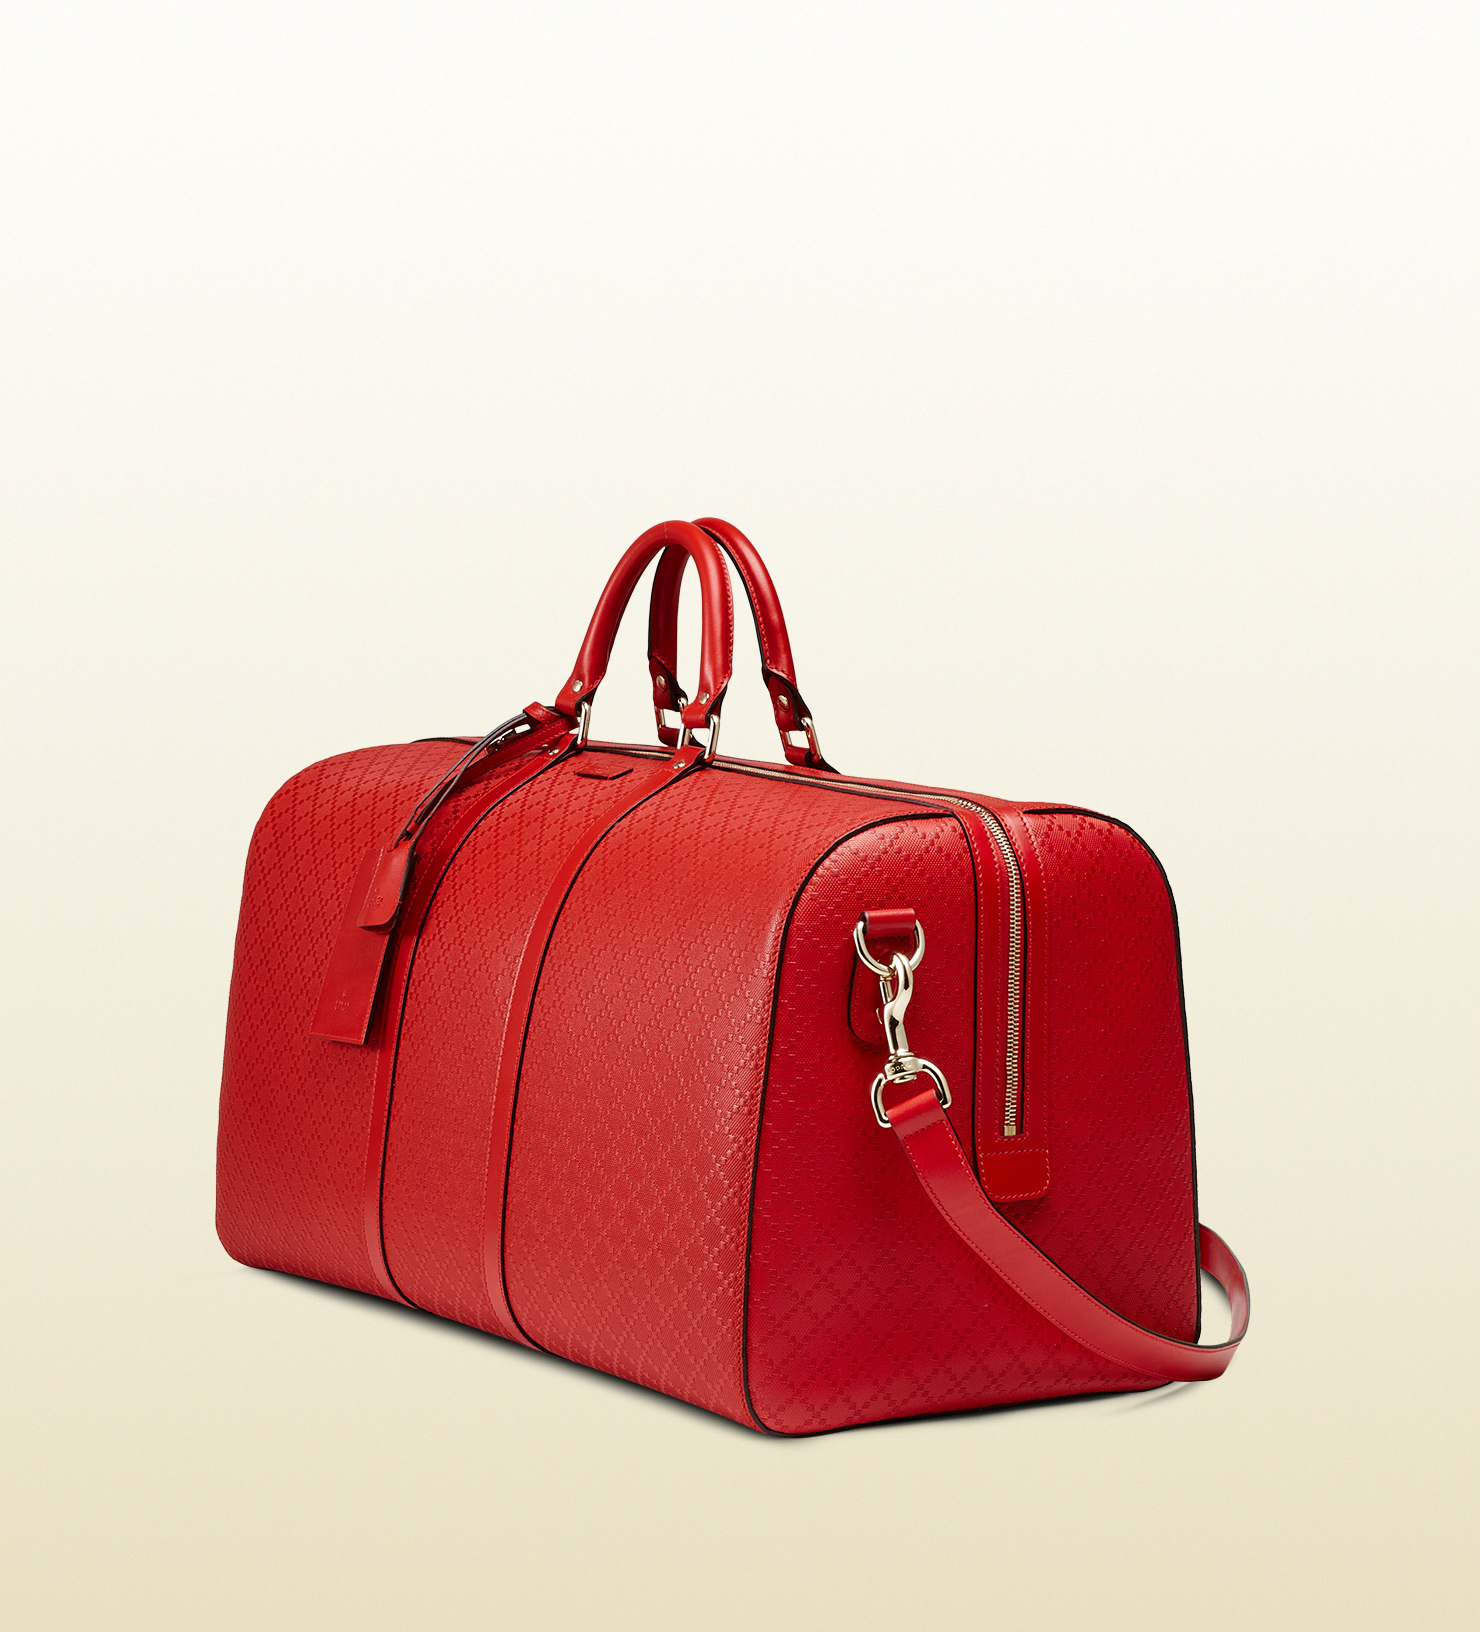 0e1e7e6e4c0d Lyst gucci bright diamante leather carry on duffle bag in red jpg 1480x1632 Red  duffle bag